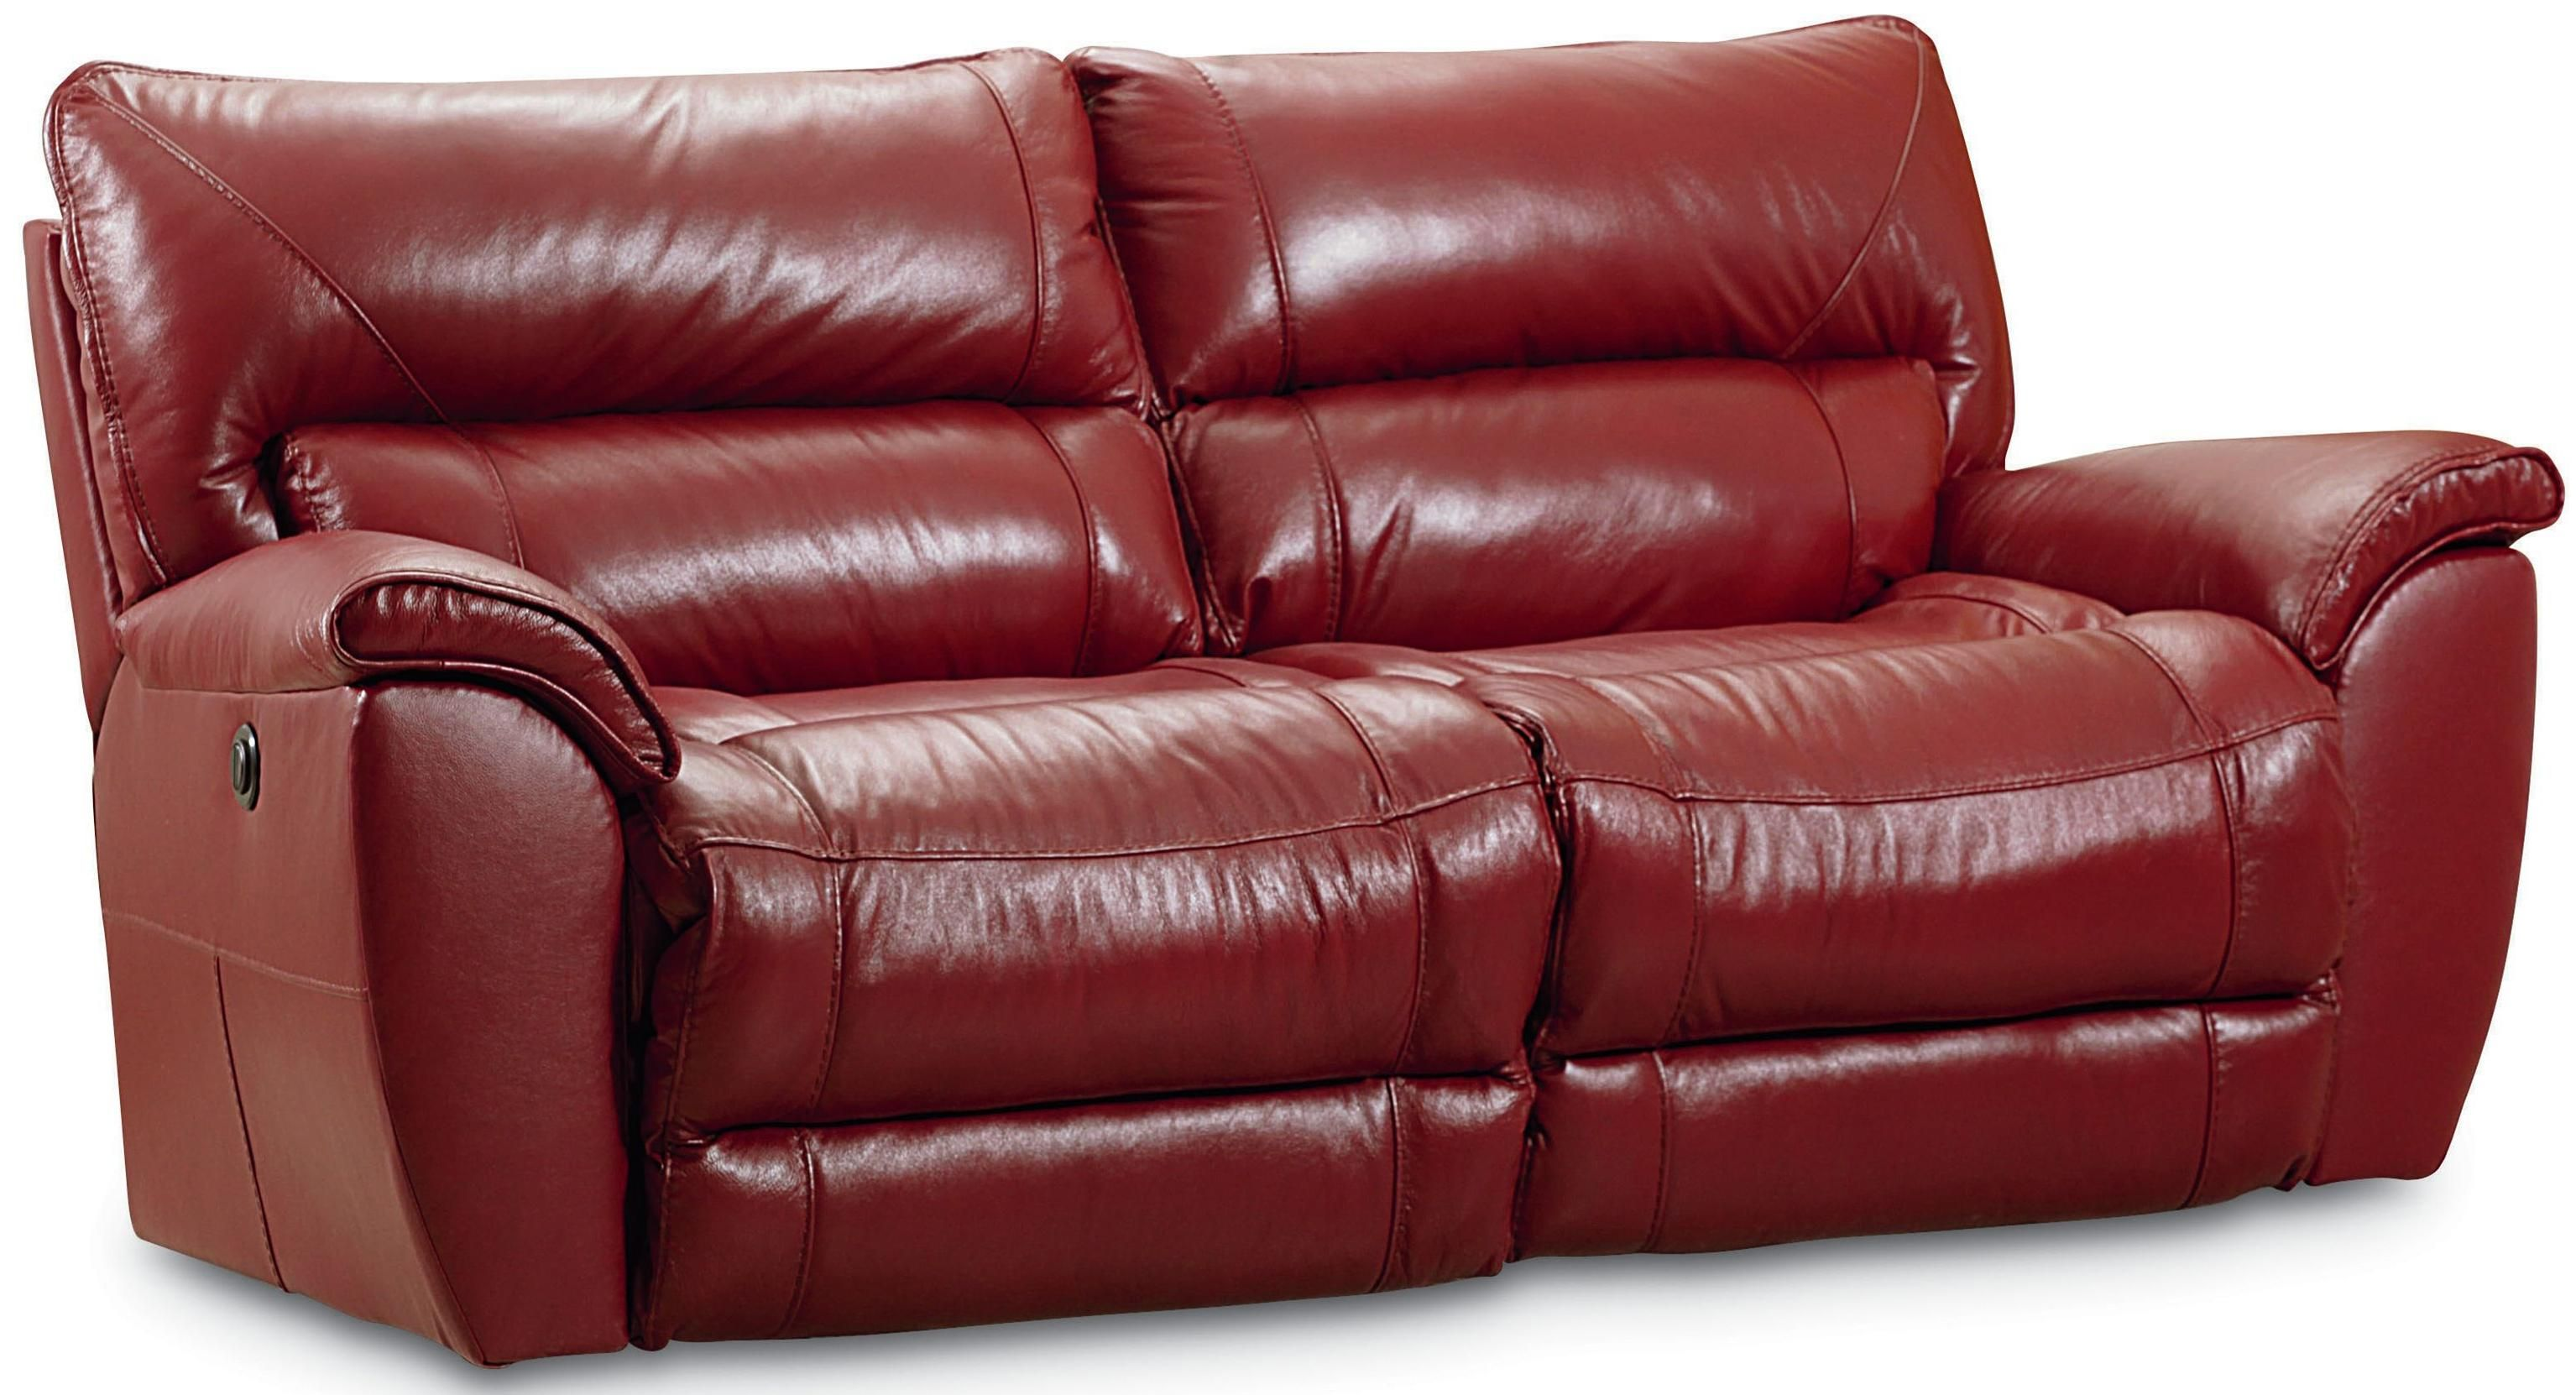 Palmer Double Reclining Sofa by Lane Liking this one BIG time